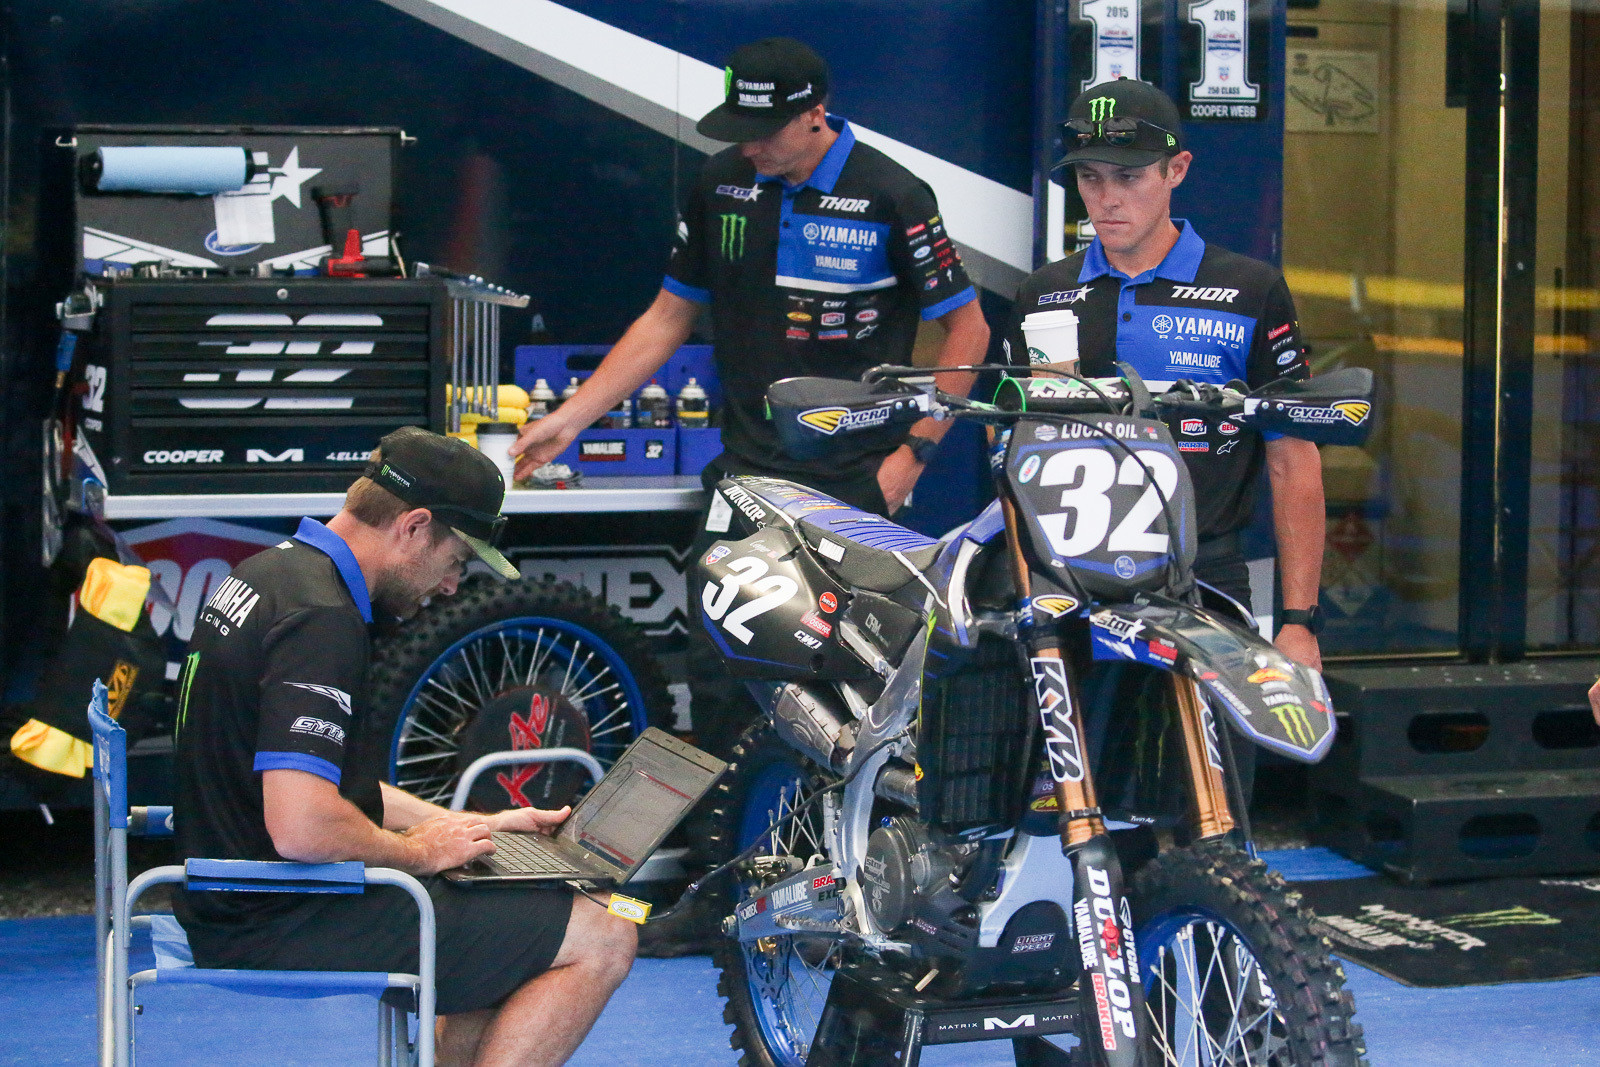 Dialing in the morning setup for the Yamalube Star Racing Yamaha bikes.